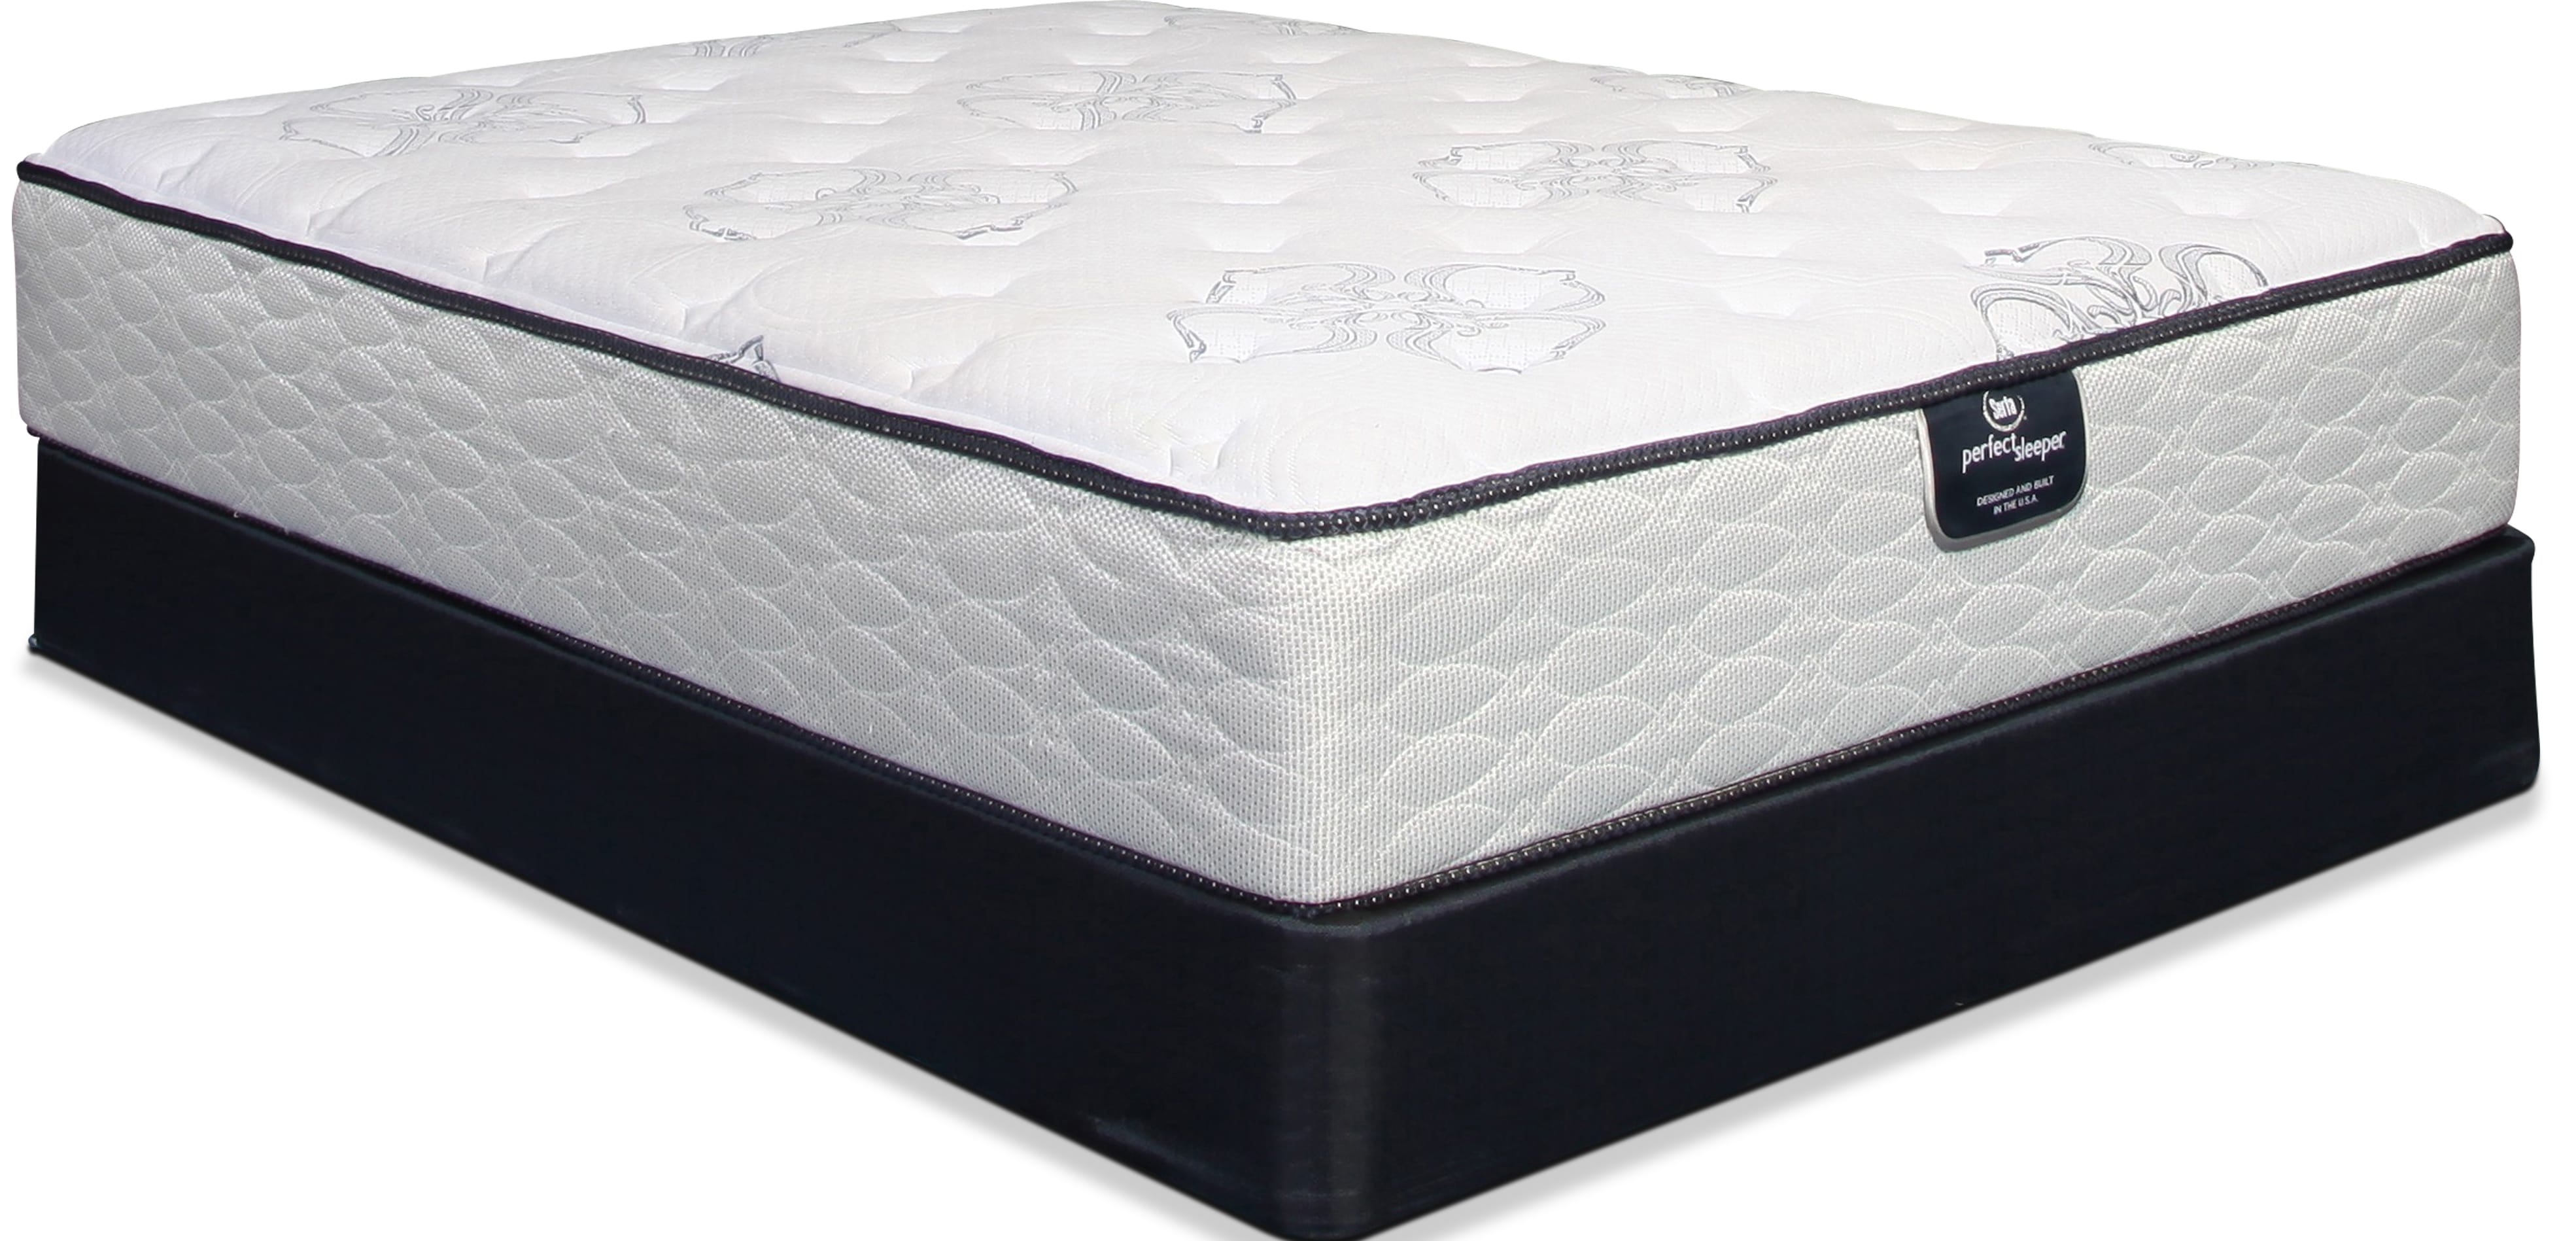 Serta Perfect Sleeper Cushion Firm King Mattress and Split Boxsprings